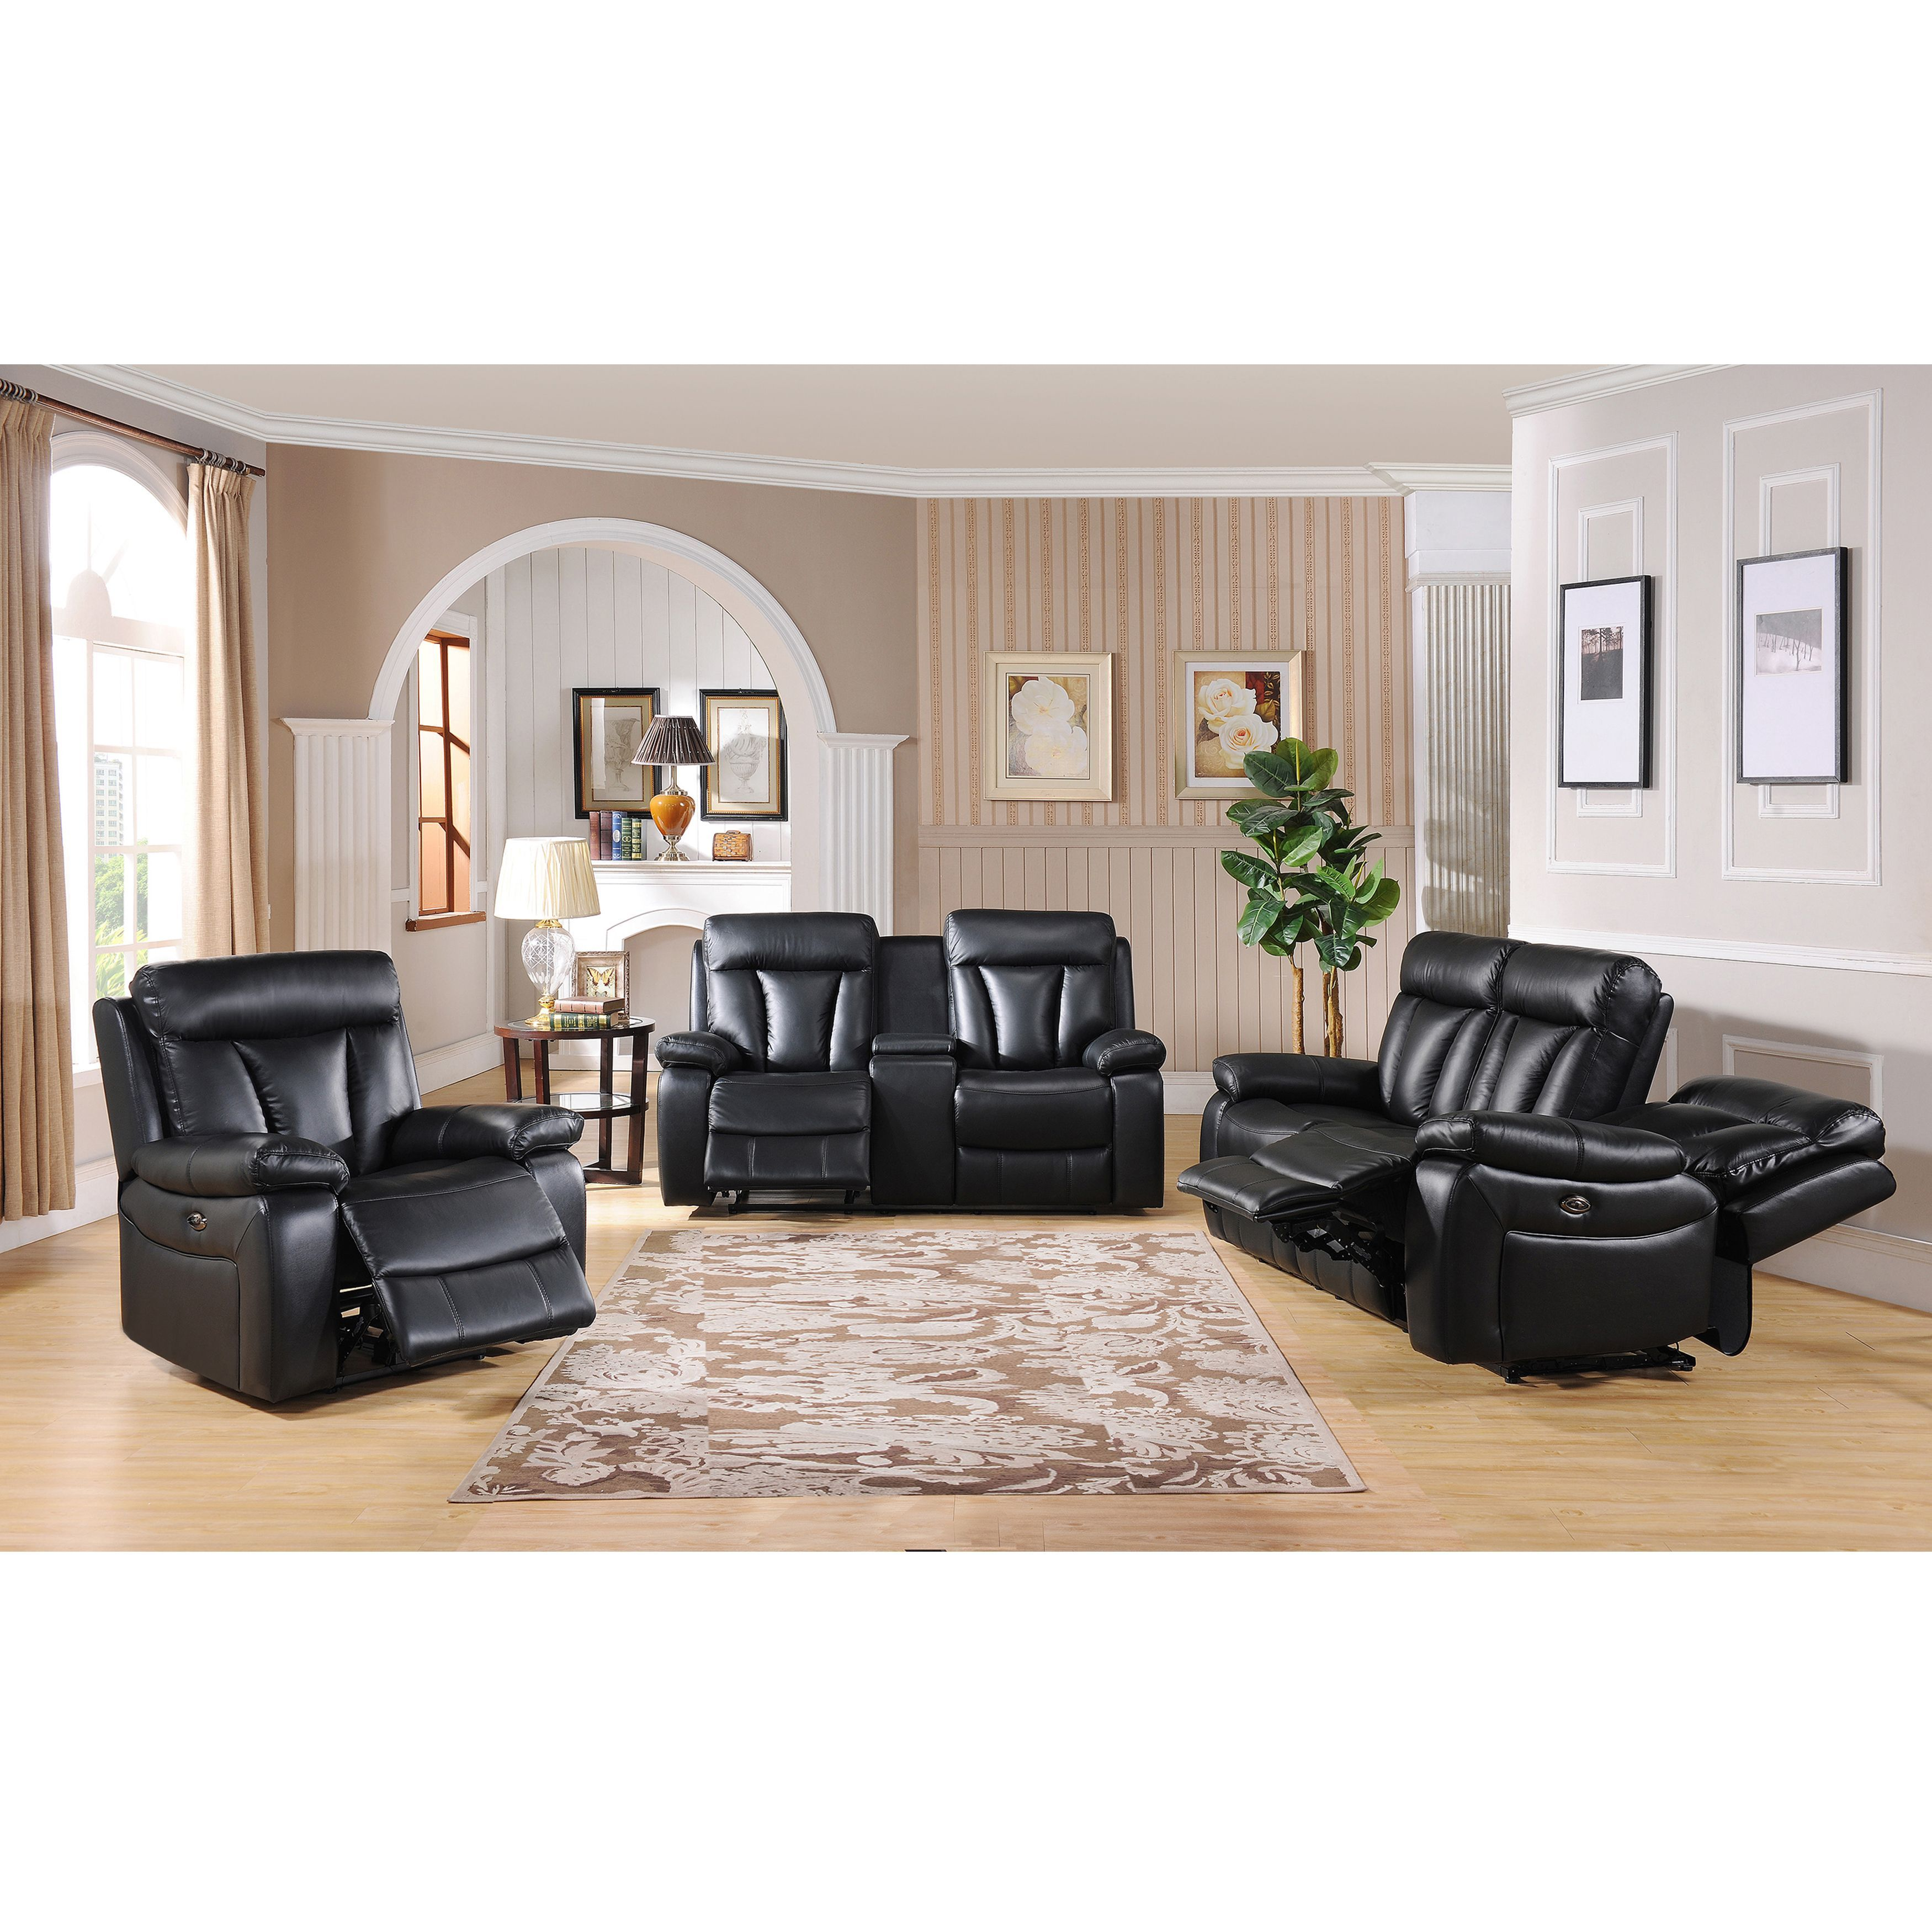 Vedder Black Top Grain Leather Power Motorized Lay flat Reclining